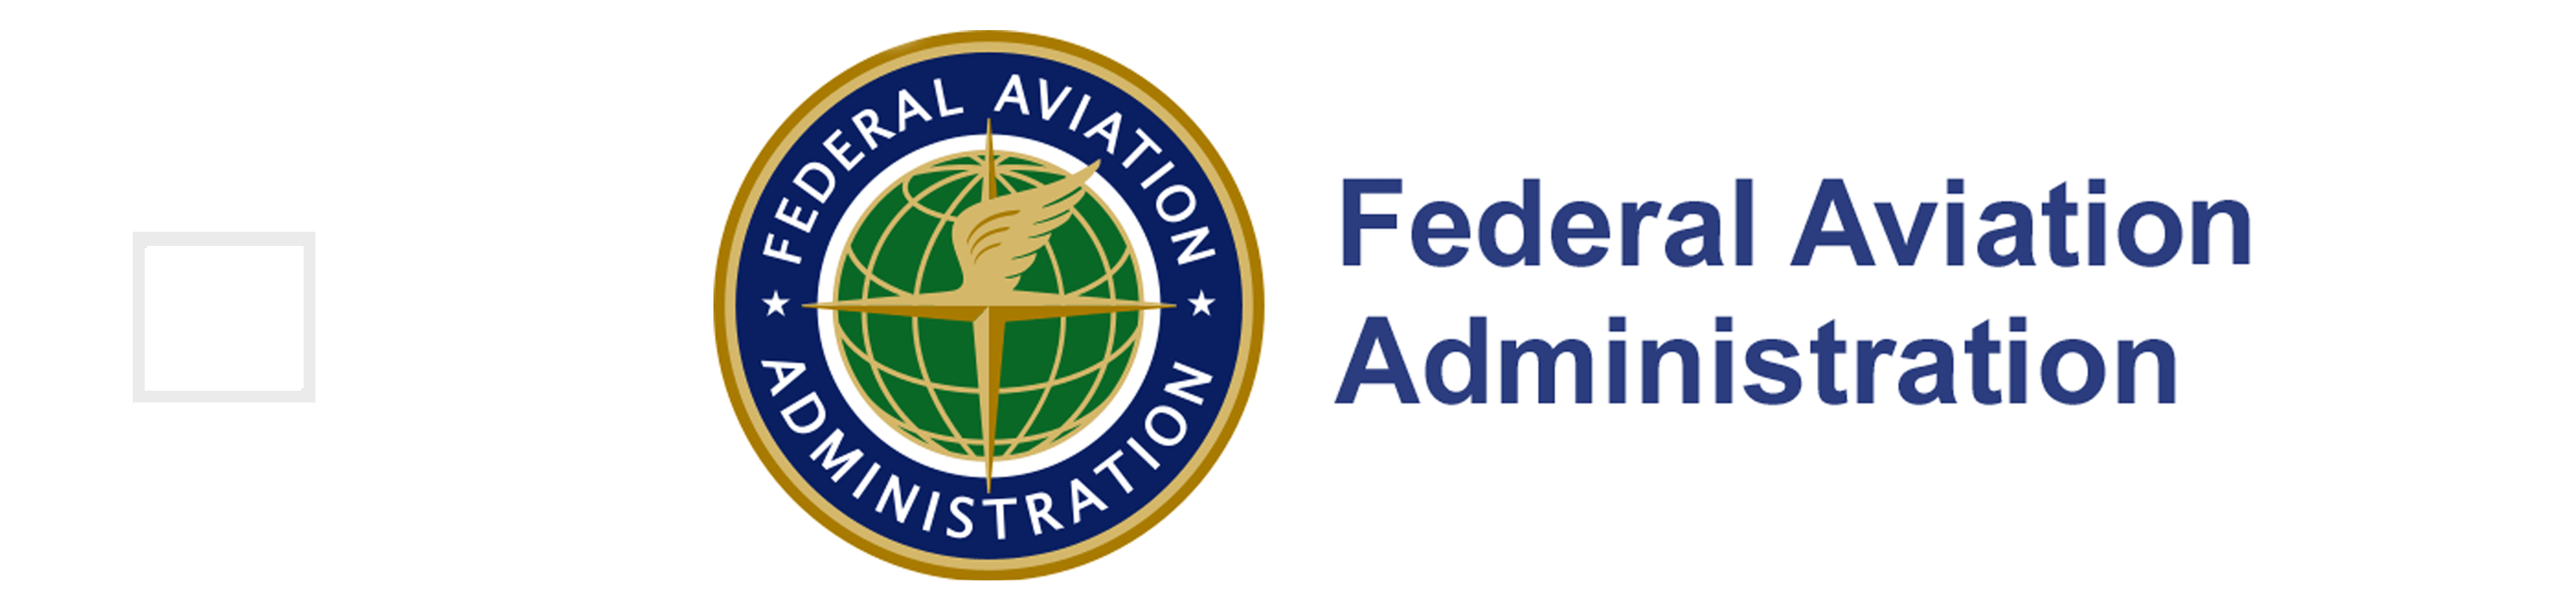 federal-administration